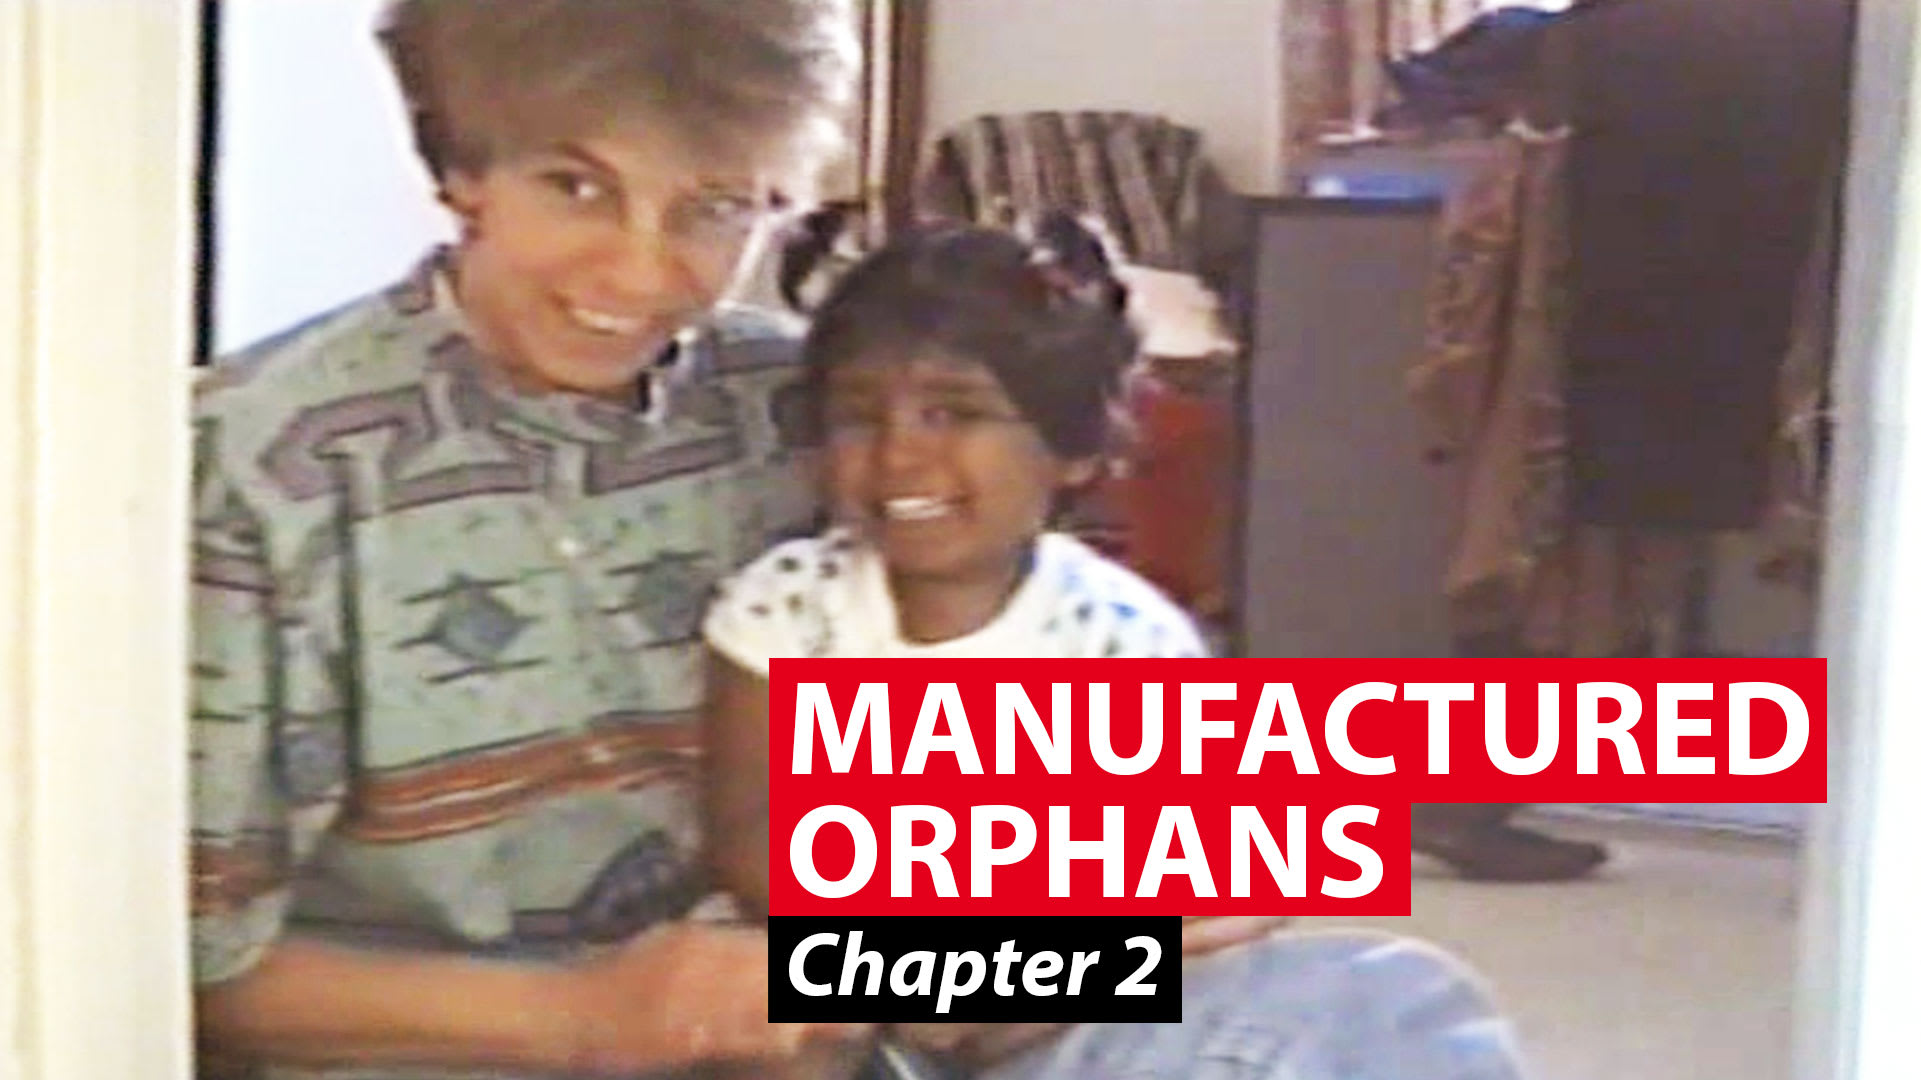 Manufactured orphans: Chapter 2